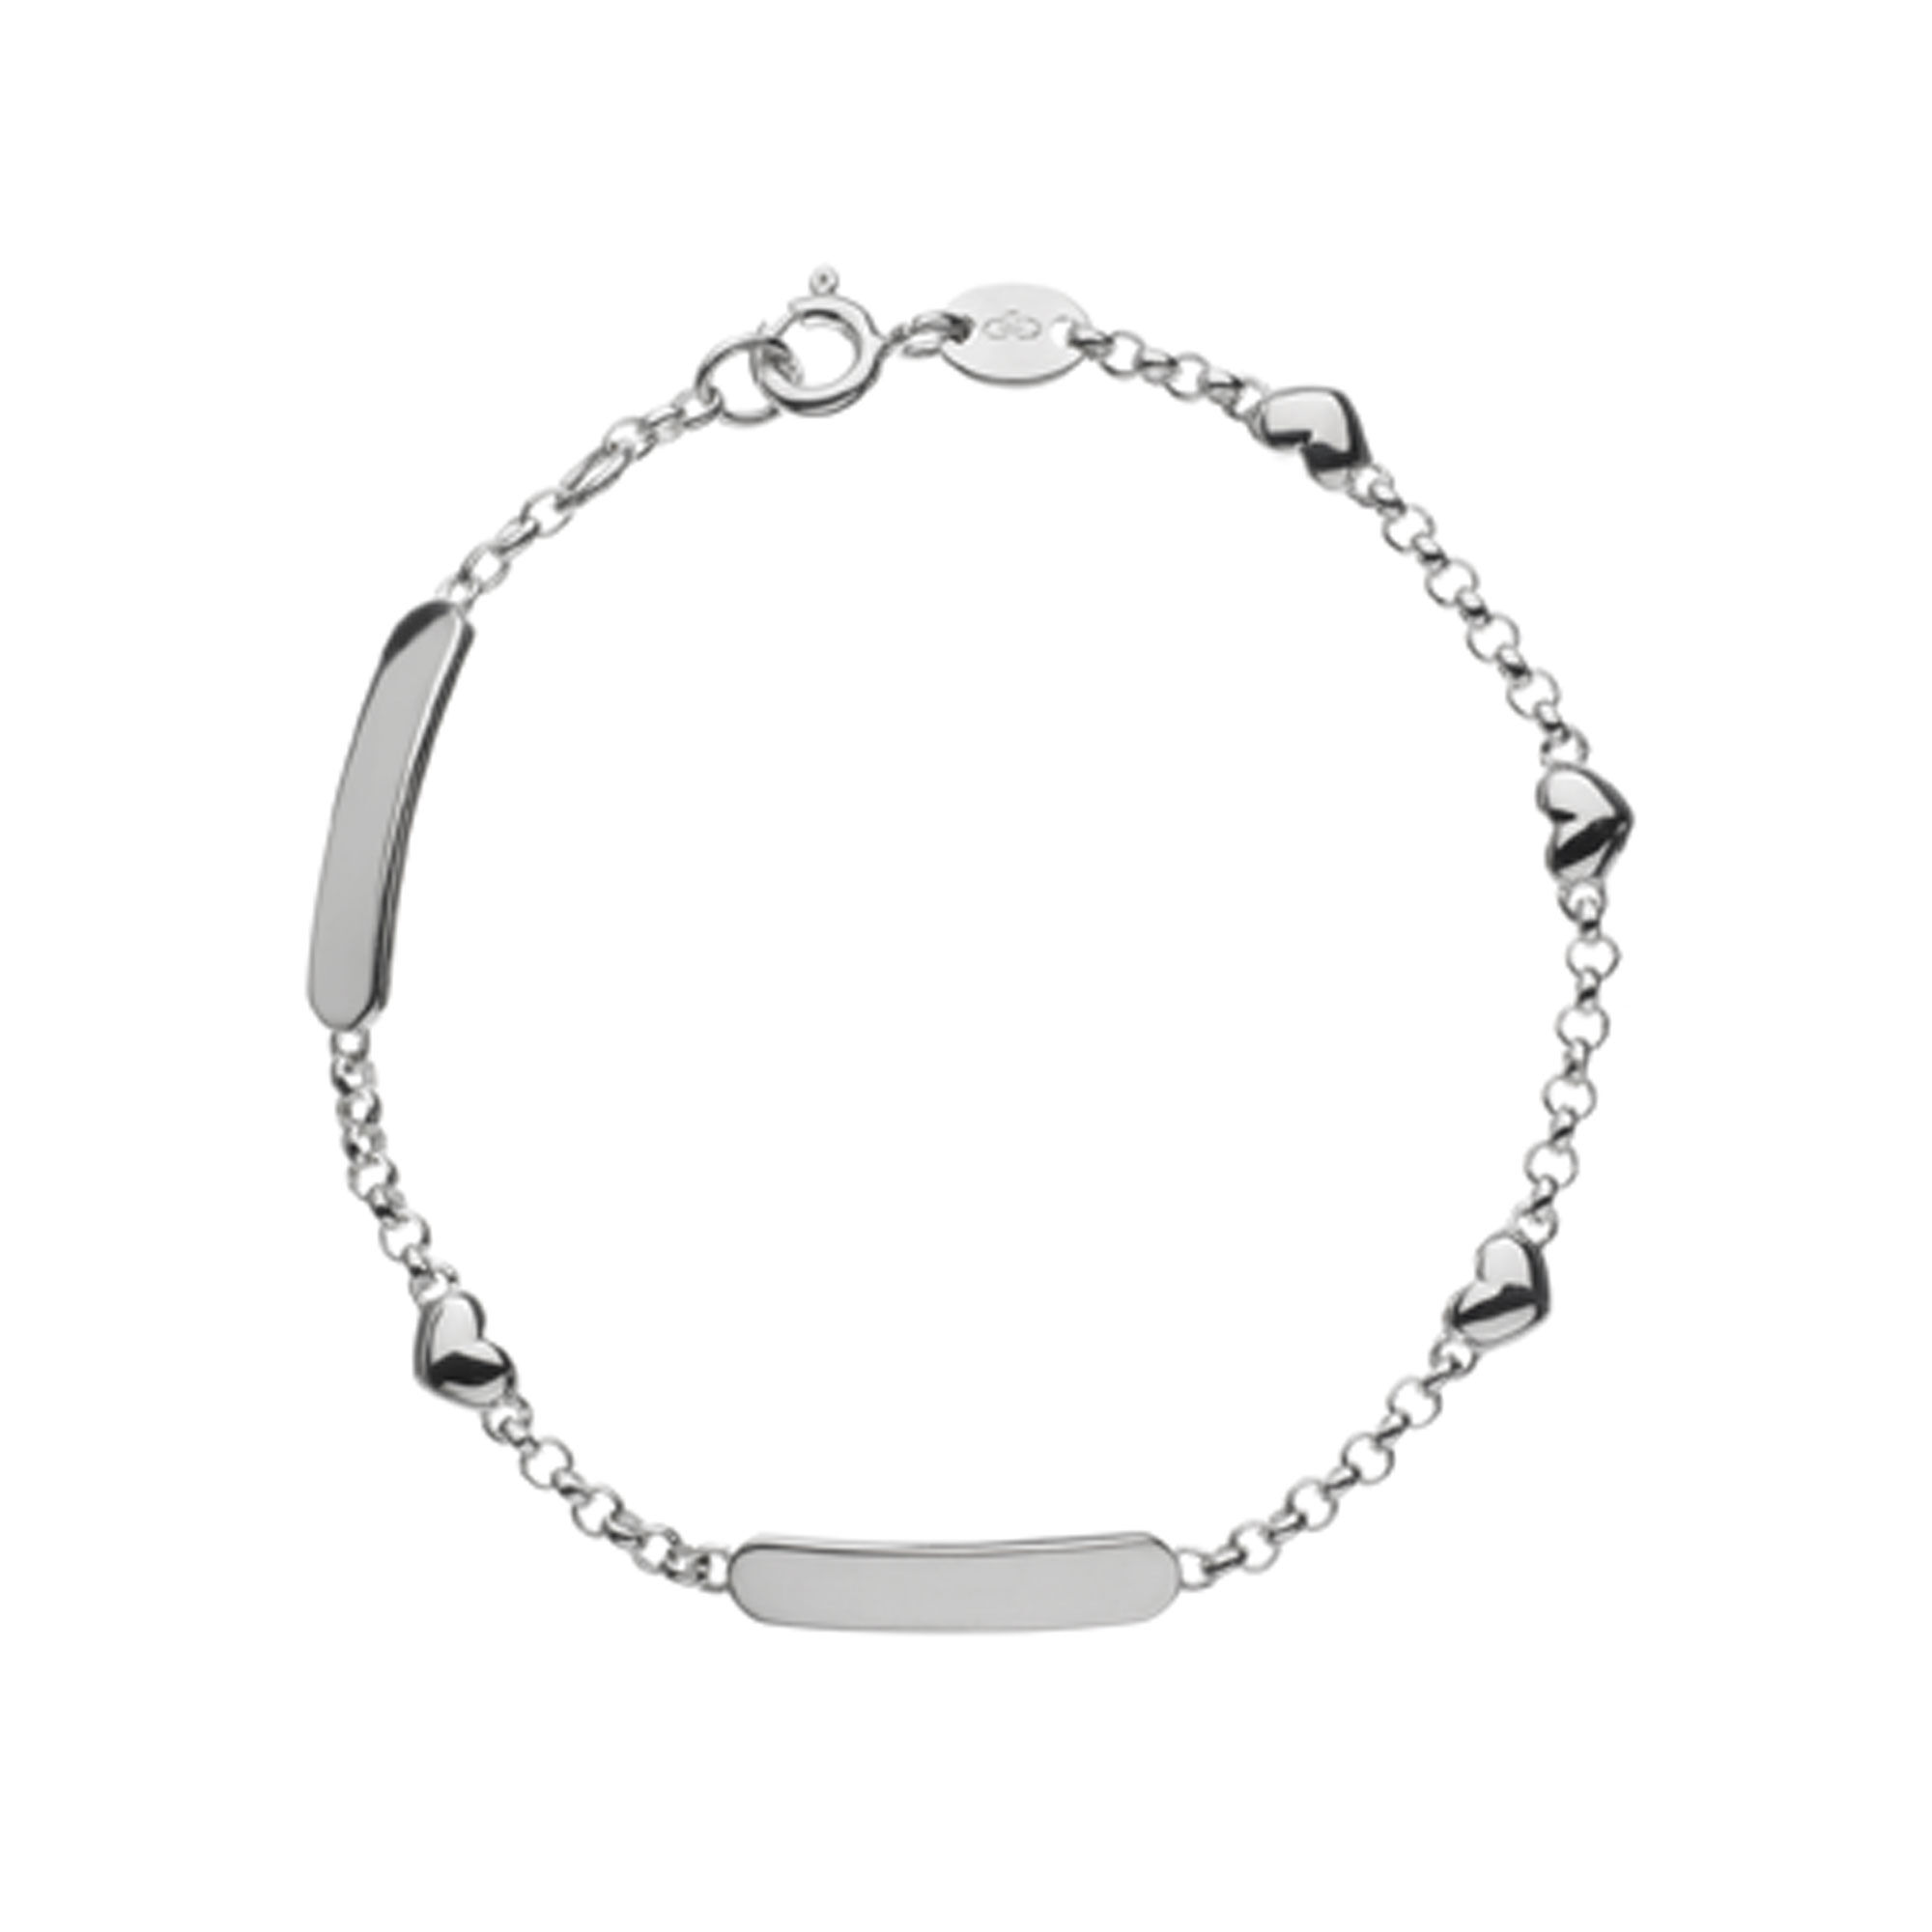 anklet hires amp en and london bracelet pave sterling essentials silver links heart diamond gb of